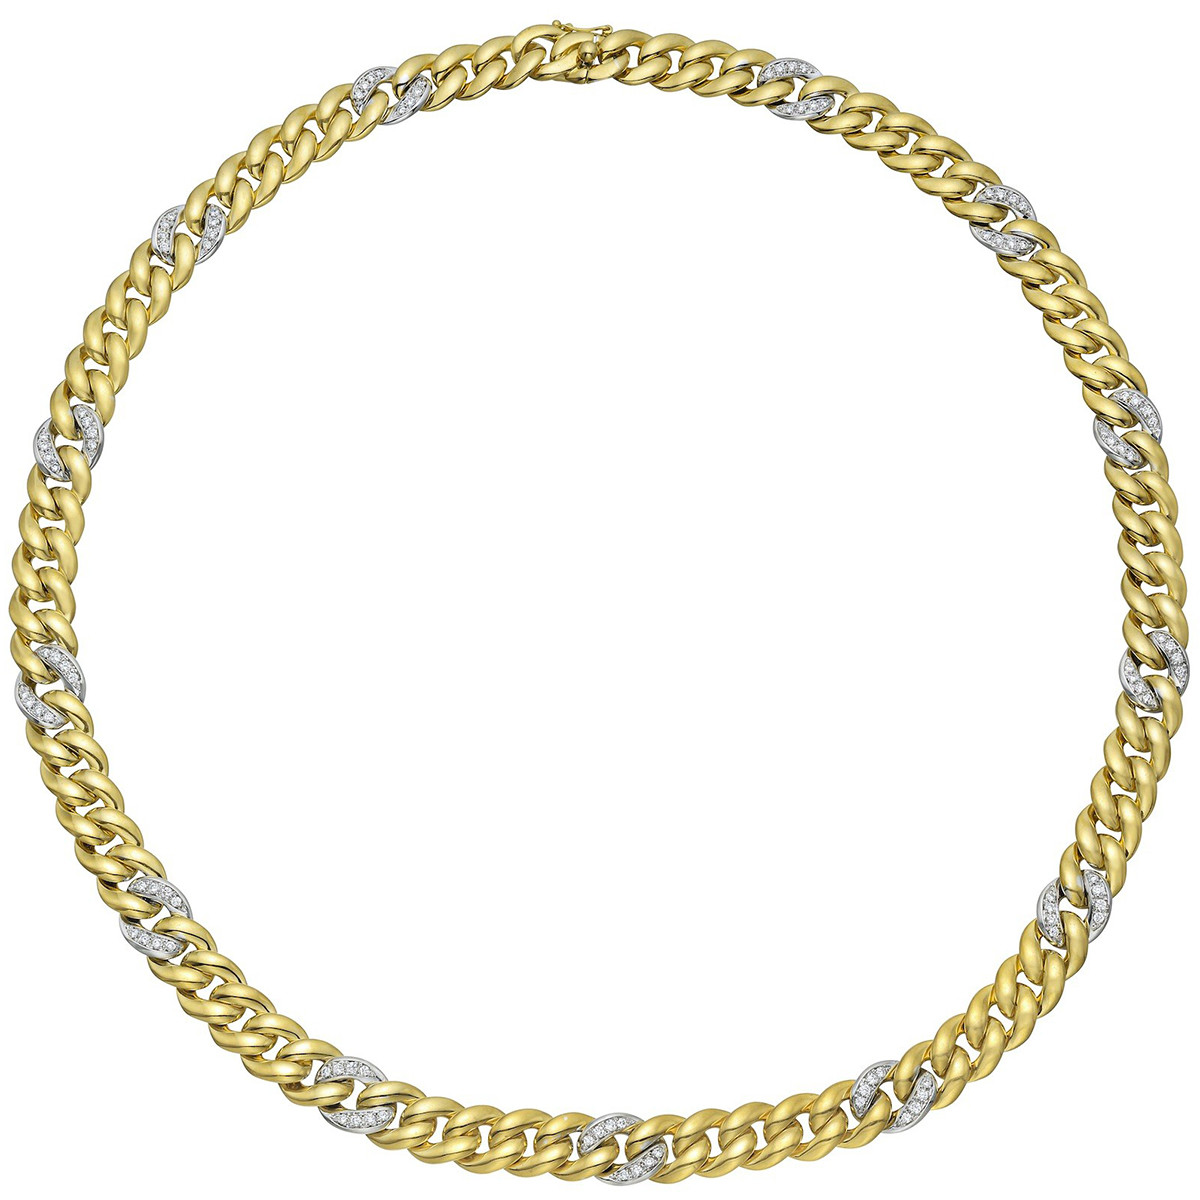 18k Gold & Diamond Round Curb Link Necklace